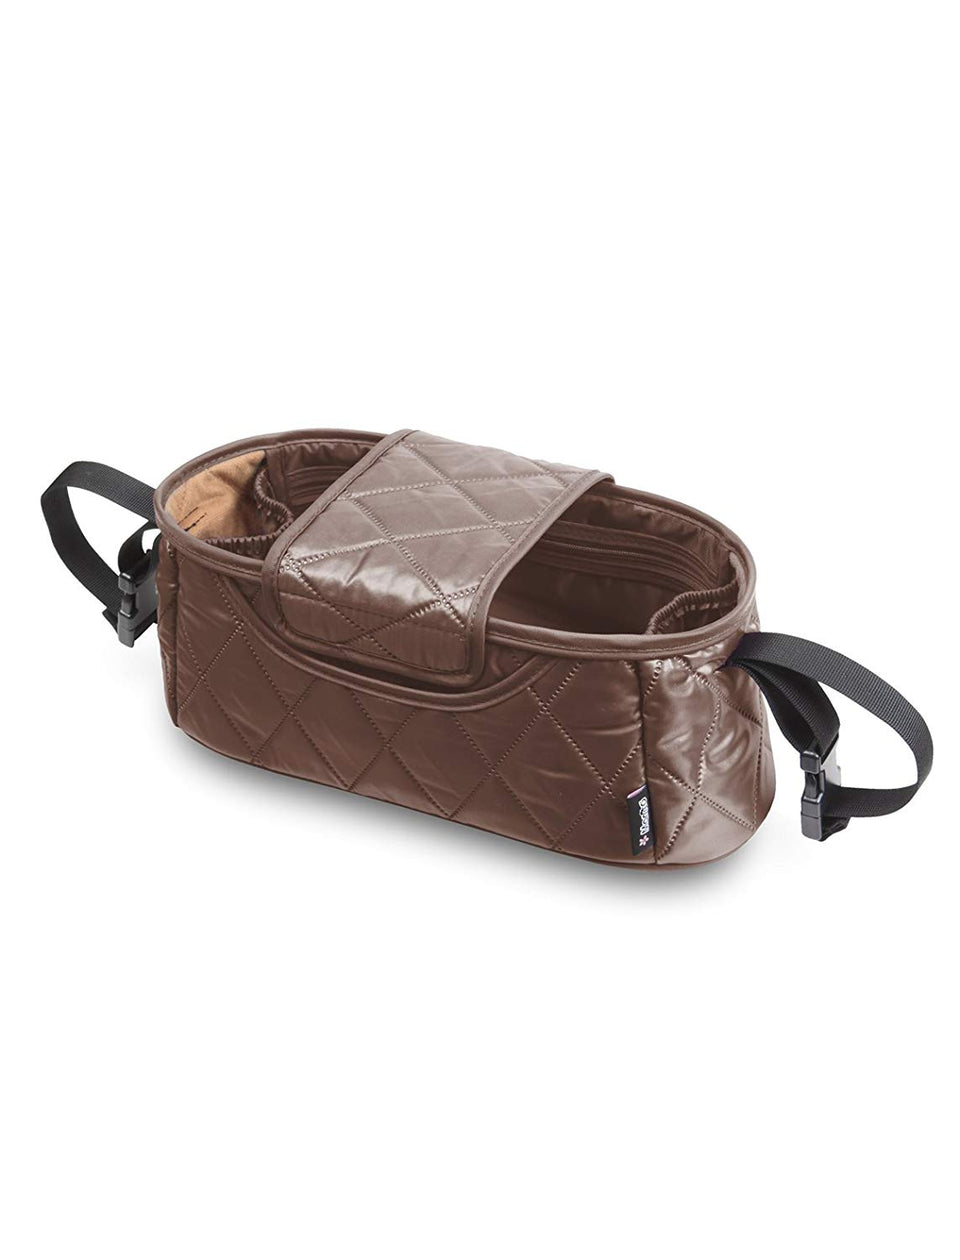 Handy Stroller Organizer (Chocolate/Diamond)